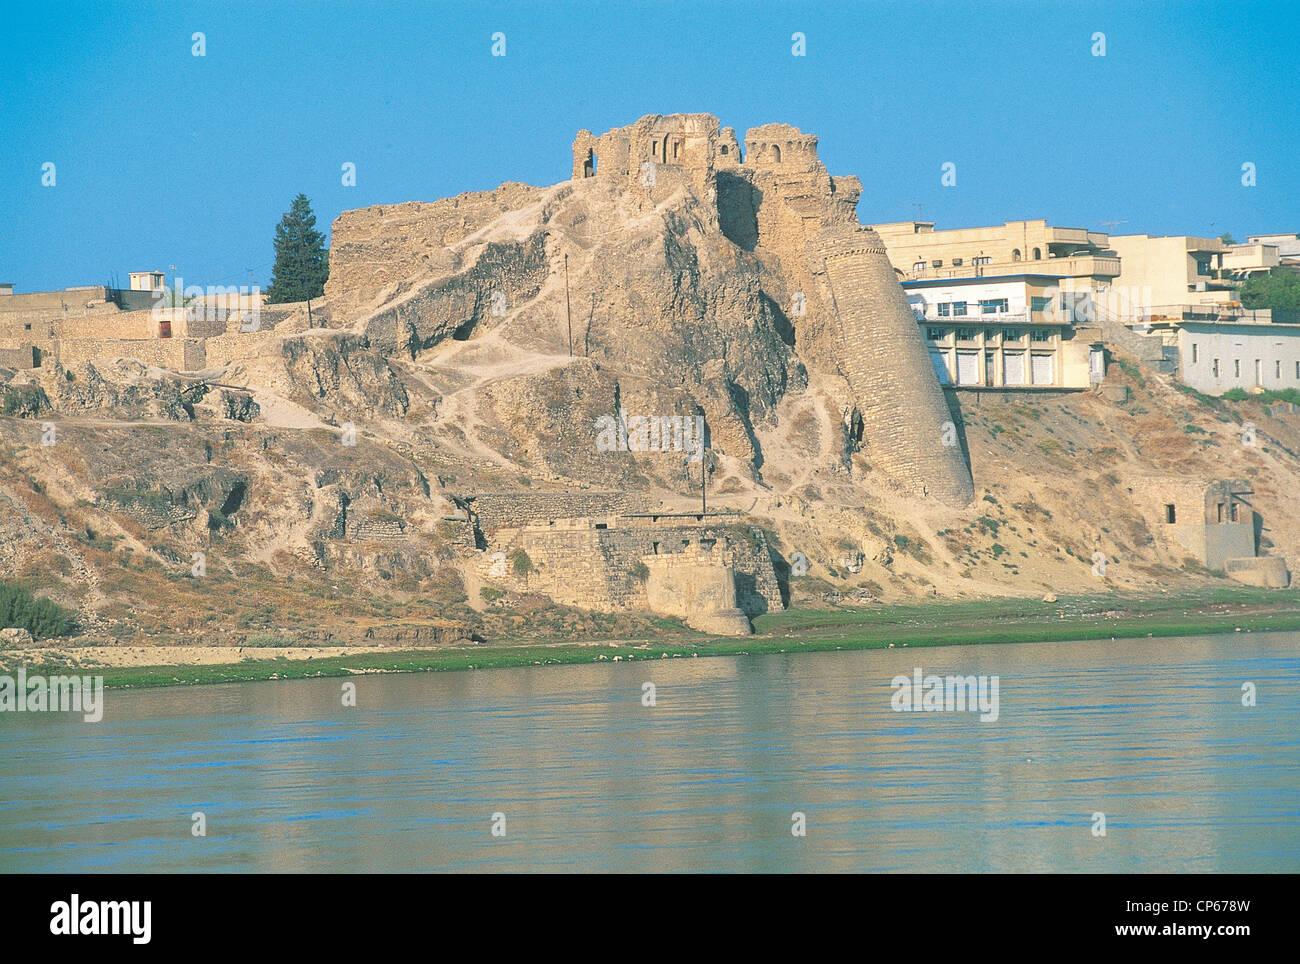 Iraq - Mosul. Fortress Taby Bash on the Tigris River. - Stock Image